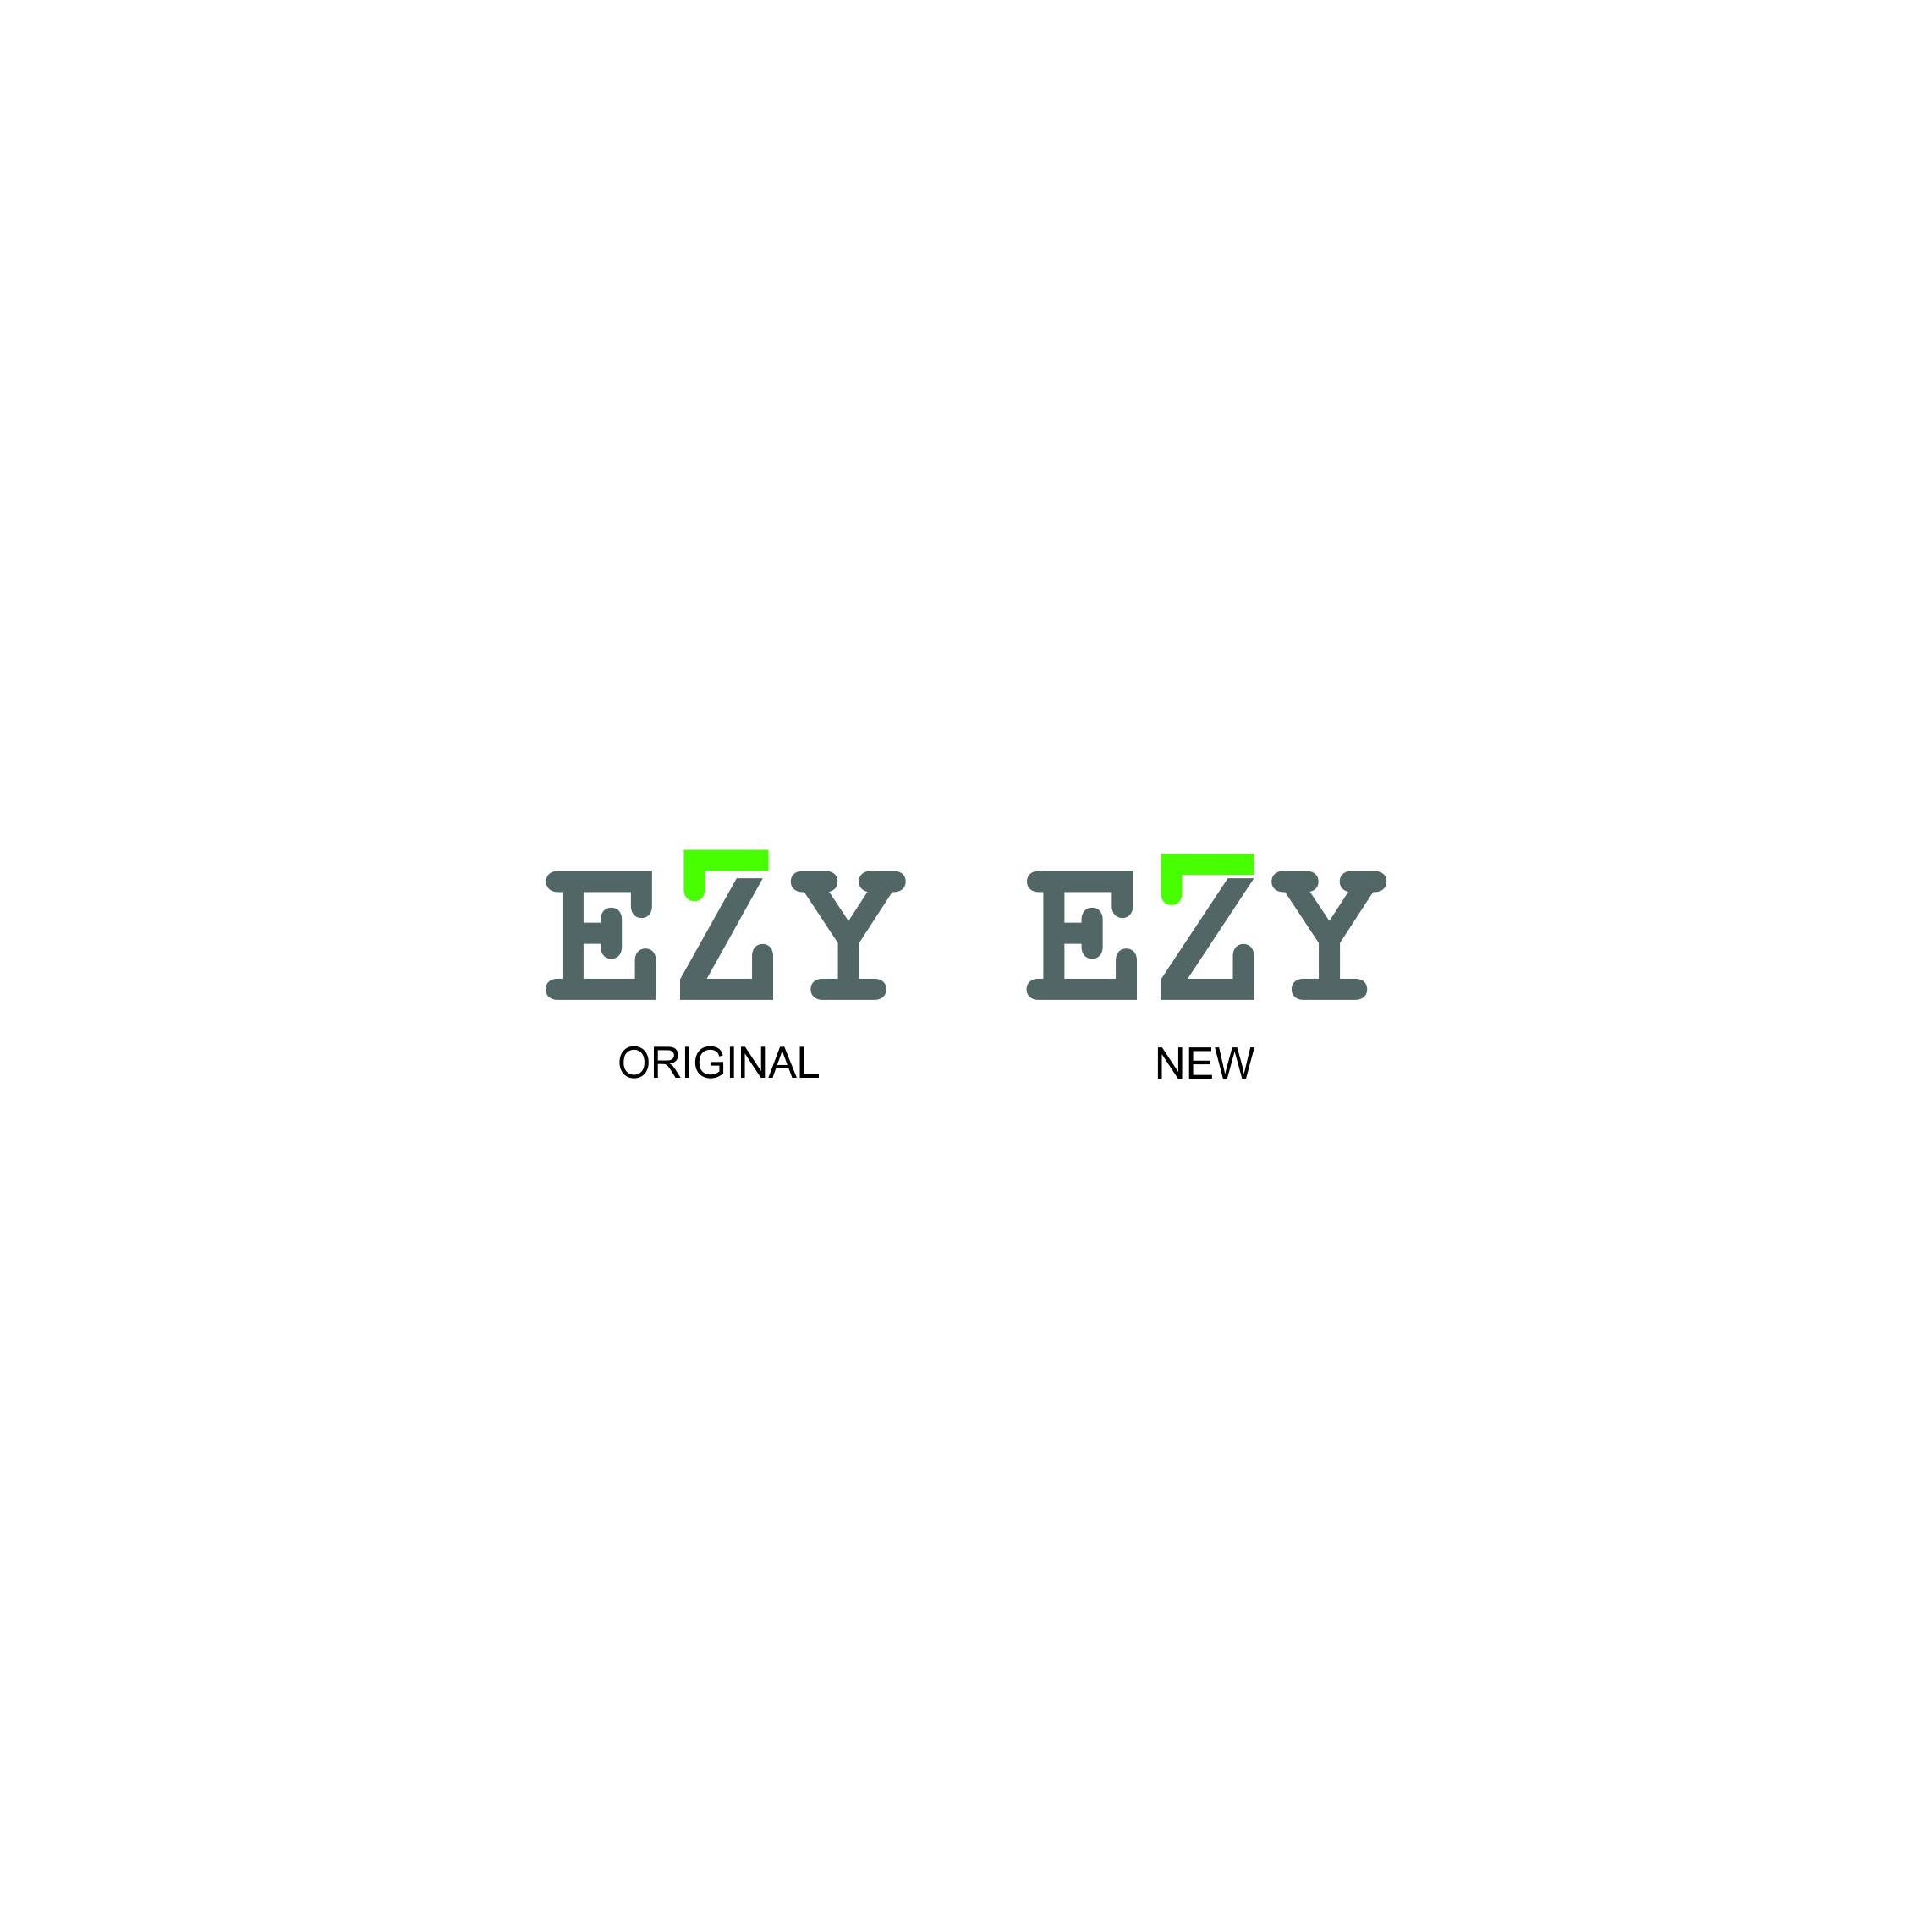 Create an outSTANDING logo for Ezy